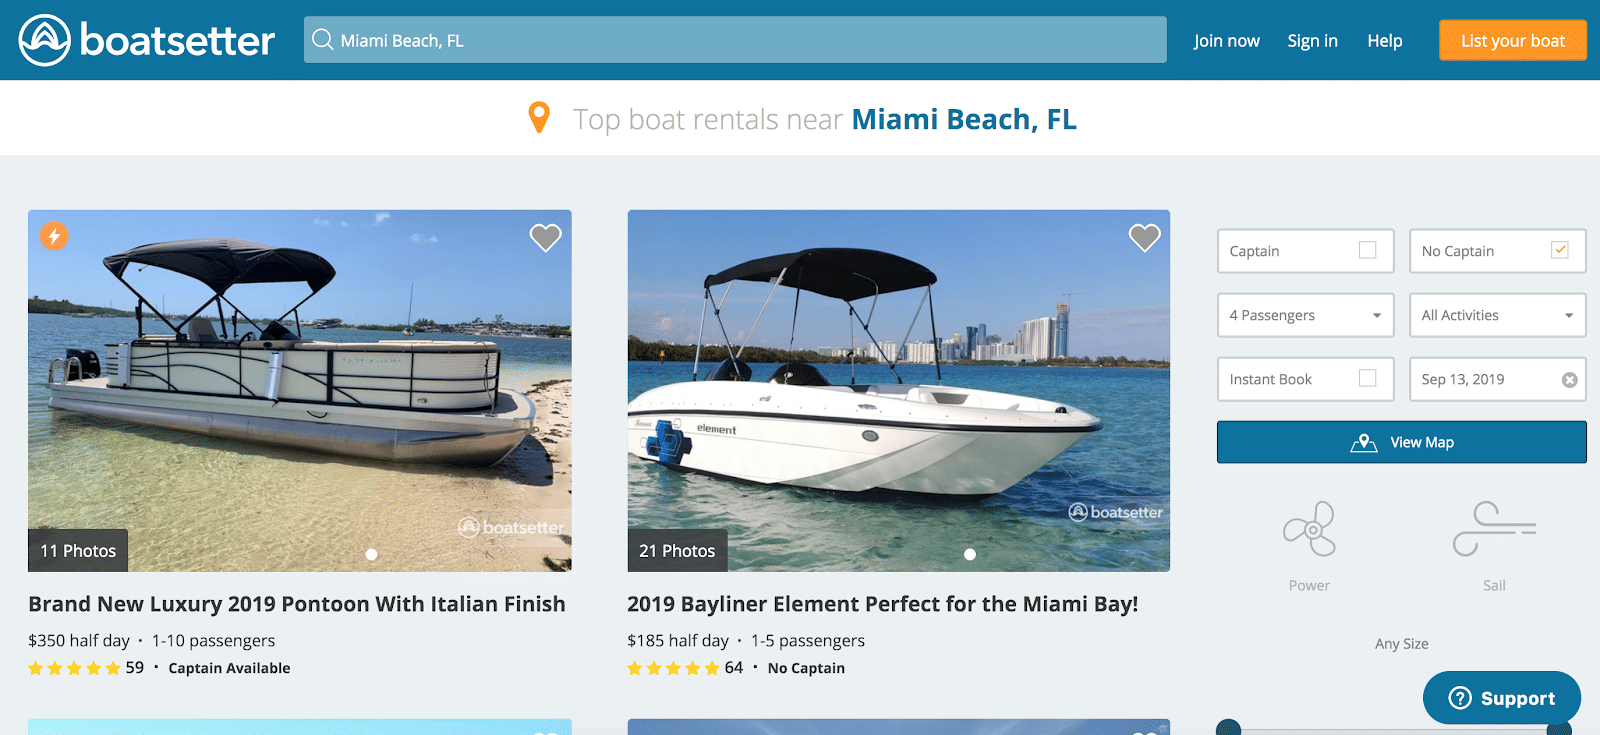 Boatsetter search results in Miami